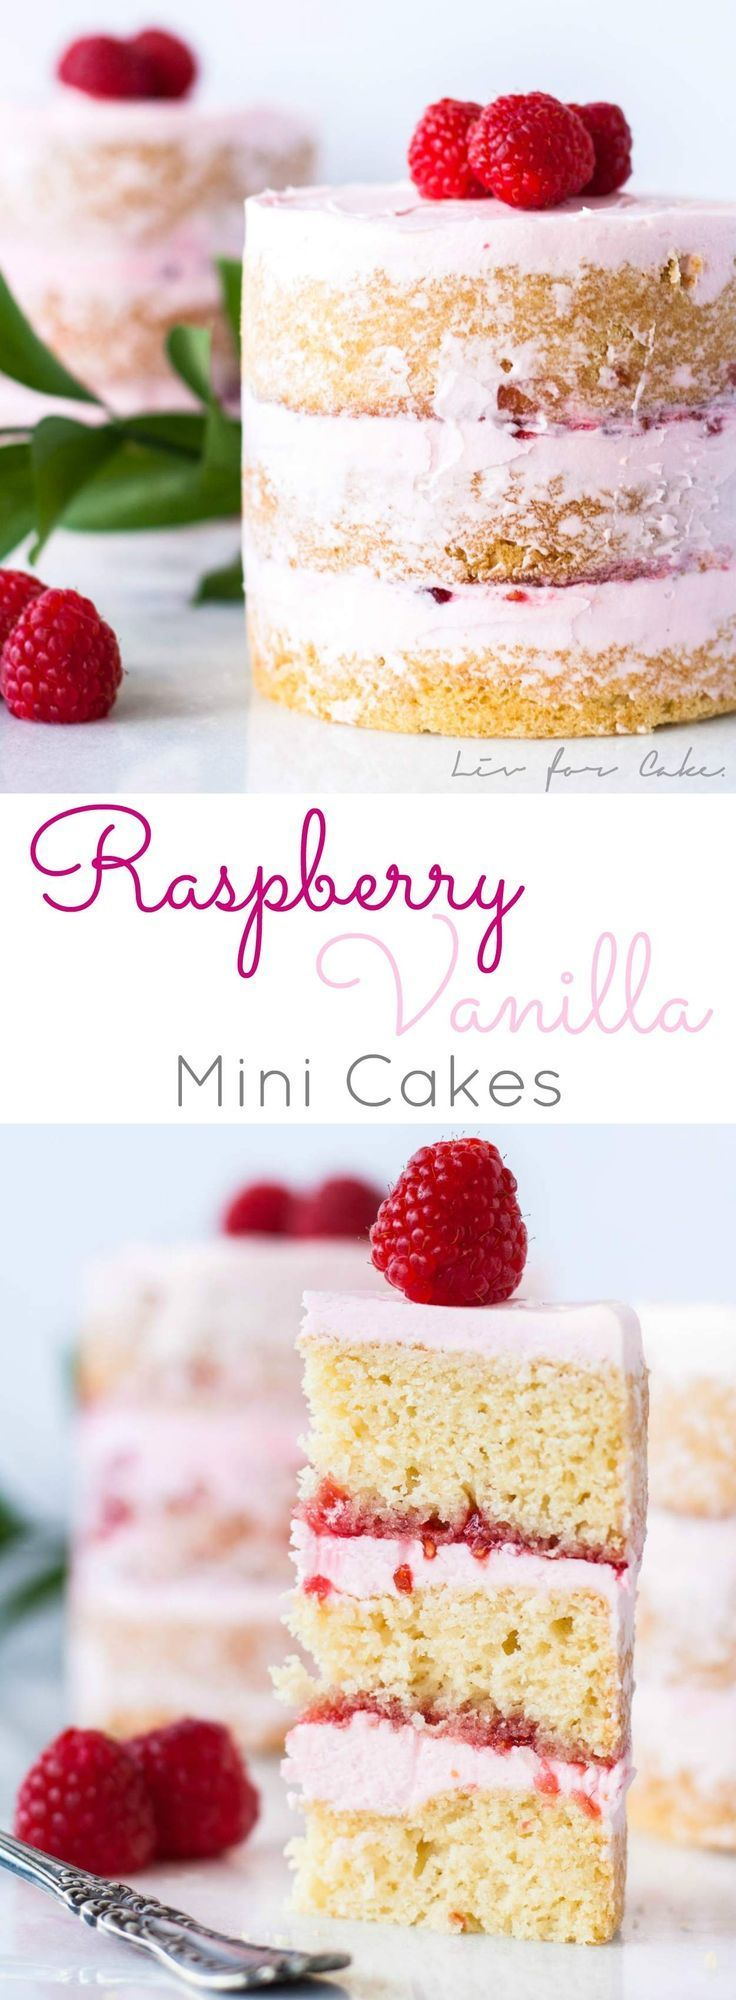 Buttery cake with a creamy vanilla frosting layered with raspberry jam. | livforcake.com #valentinesday #dessert #cake #minicakes